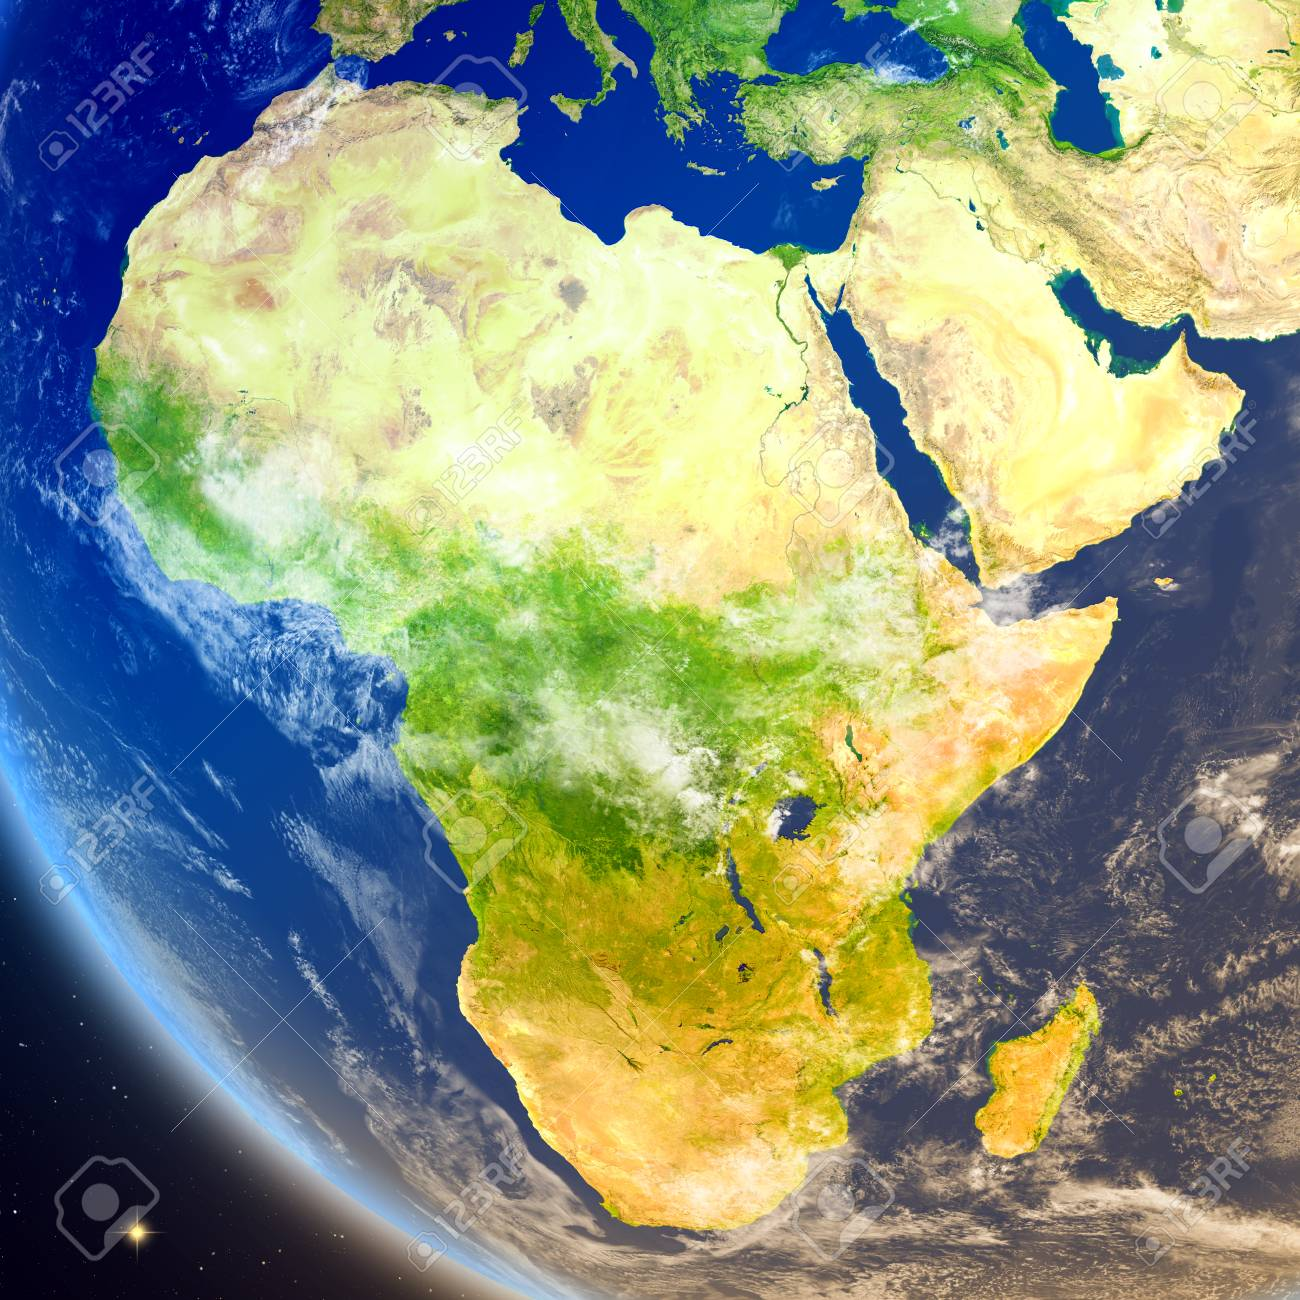 Satellite View Of Africa On Planet Earth 3d Illustration With